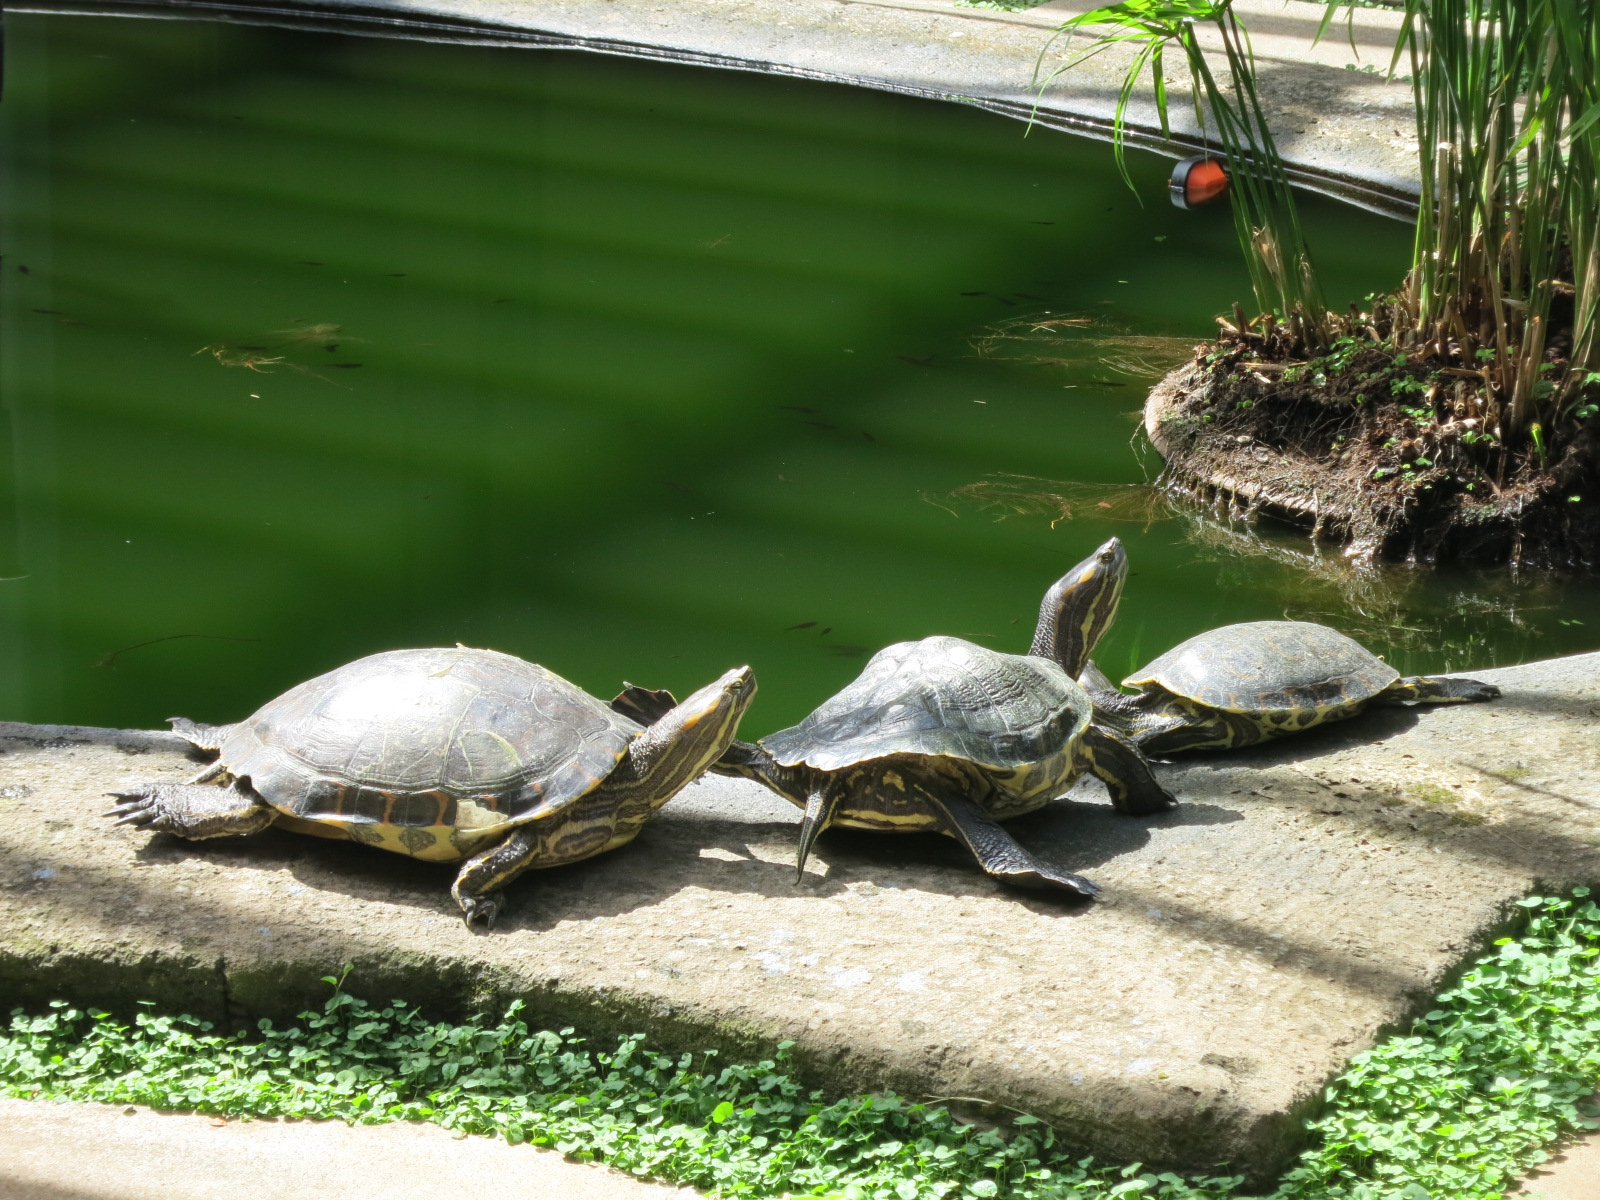 Real turtles that we watched forever